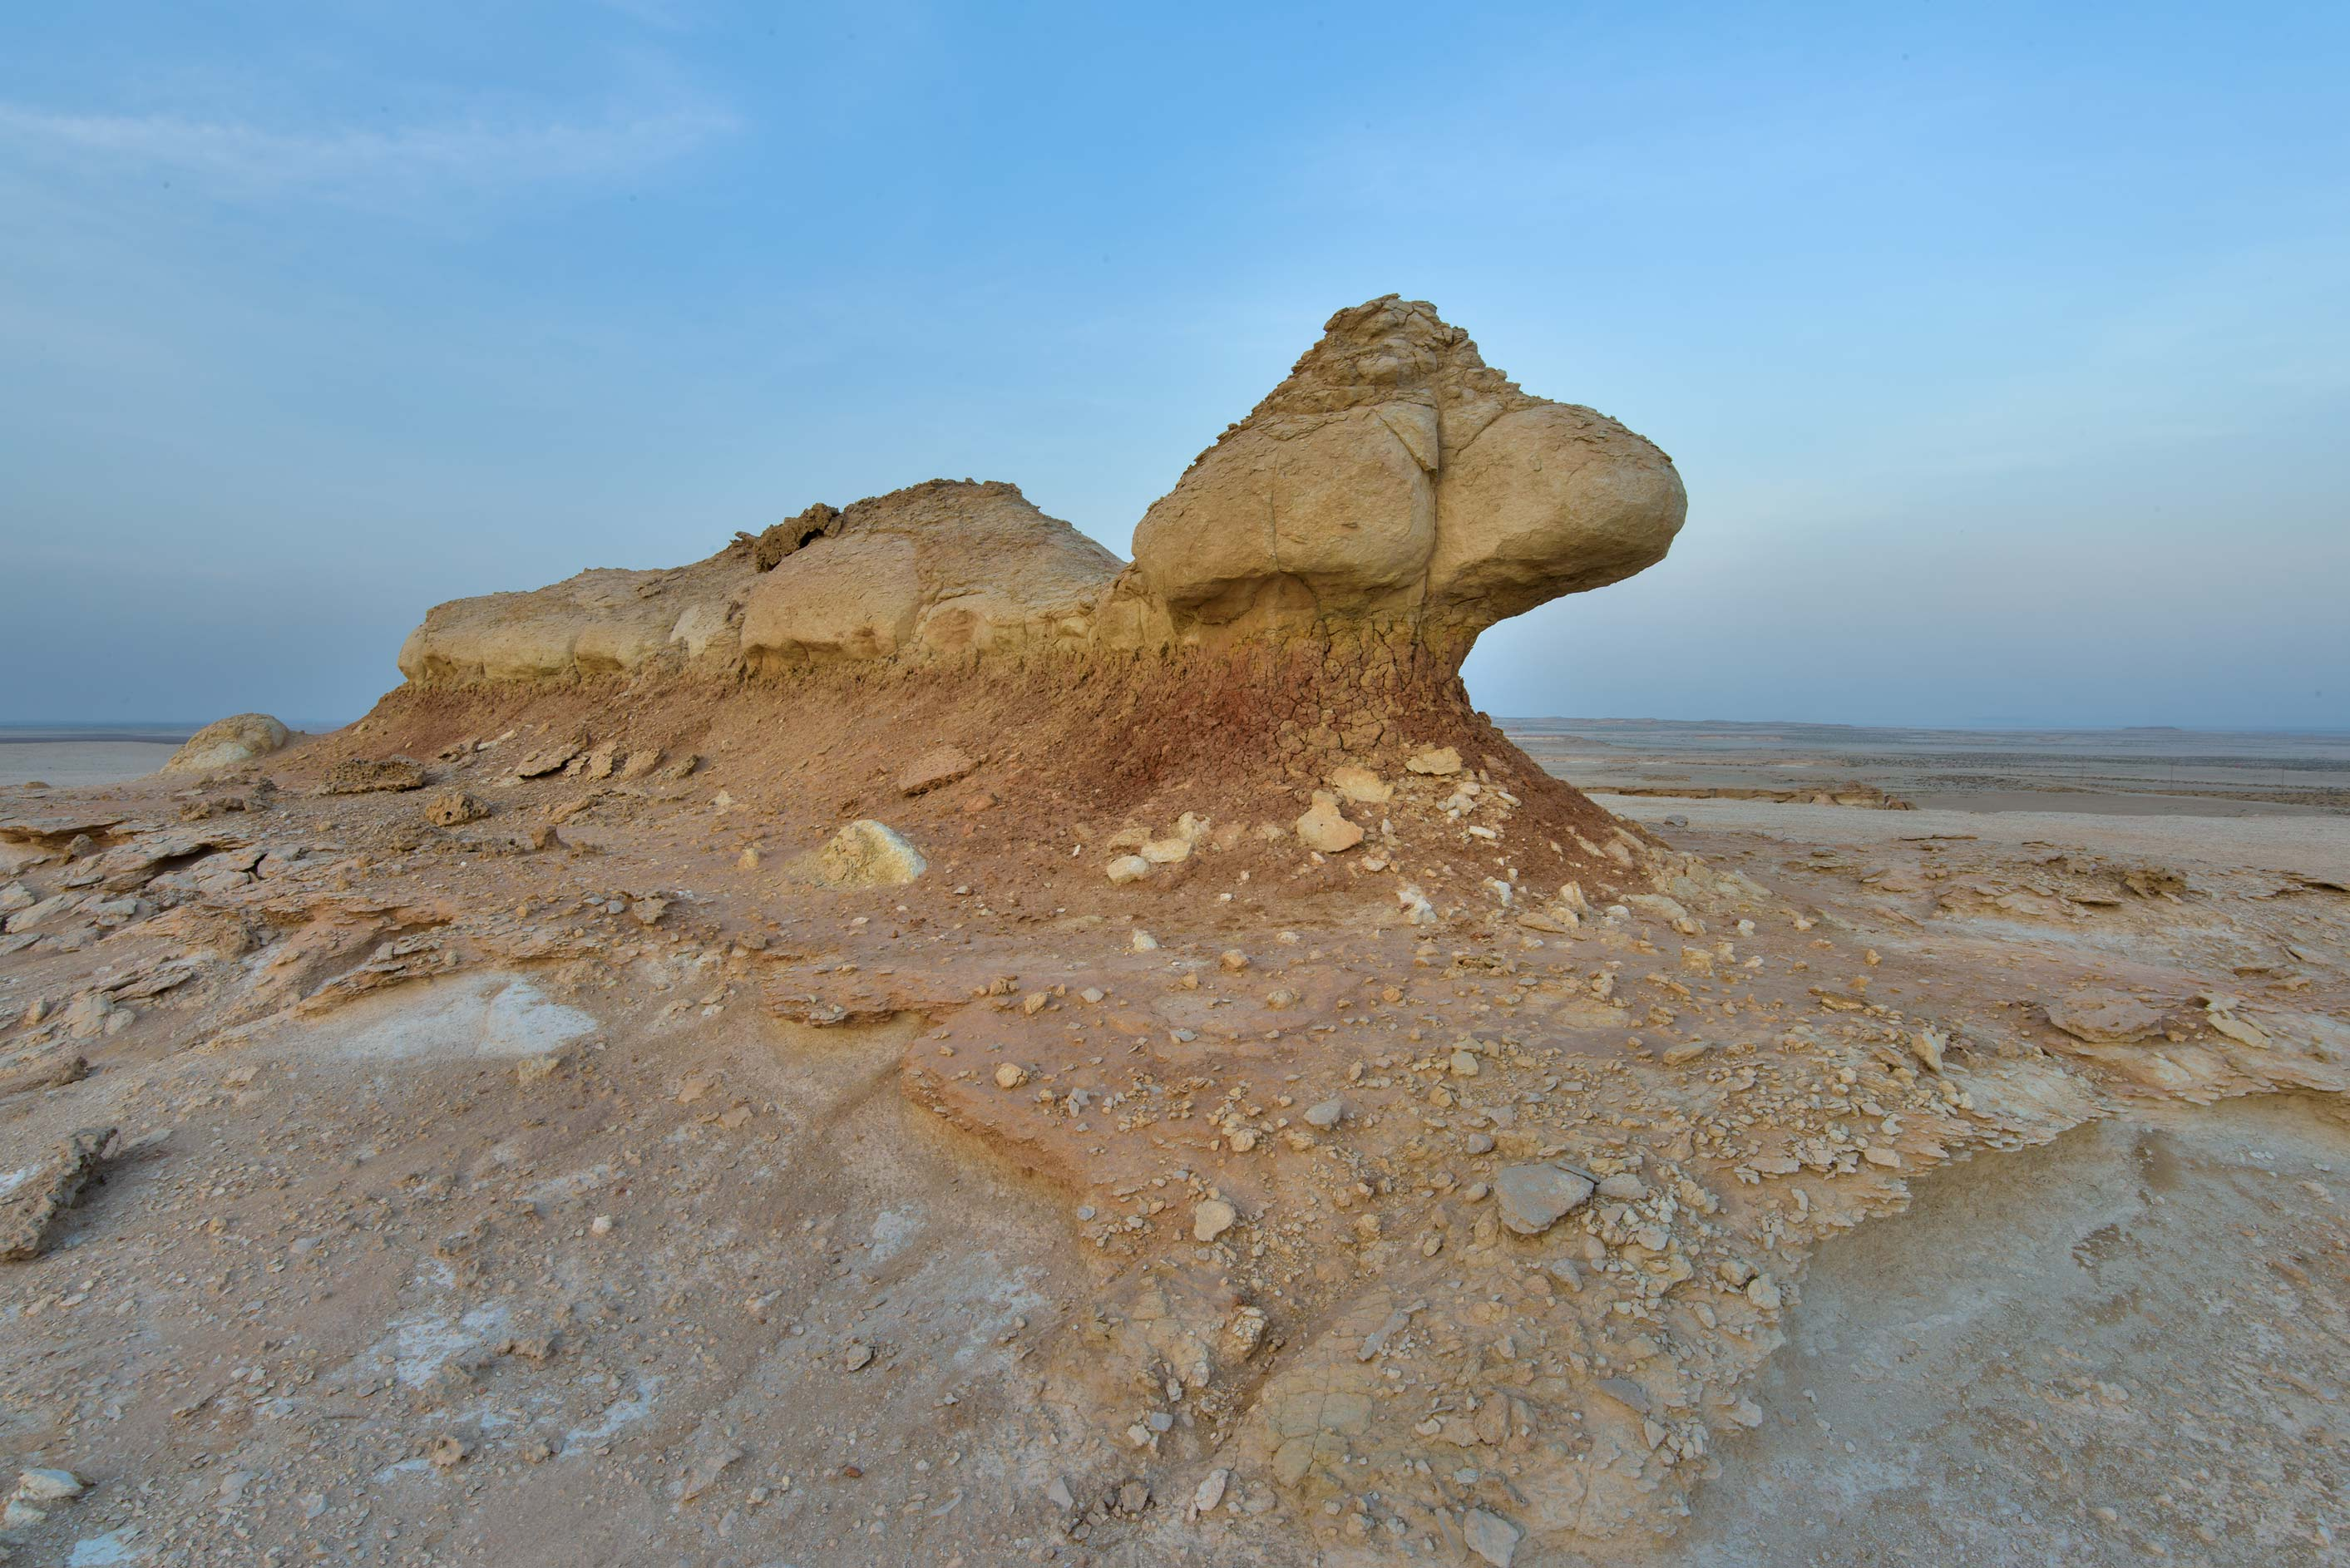 Limestone form on a plateau of a tabletop...Reserve near Abu Samra. Southern Qatar